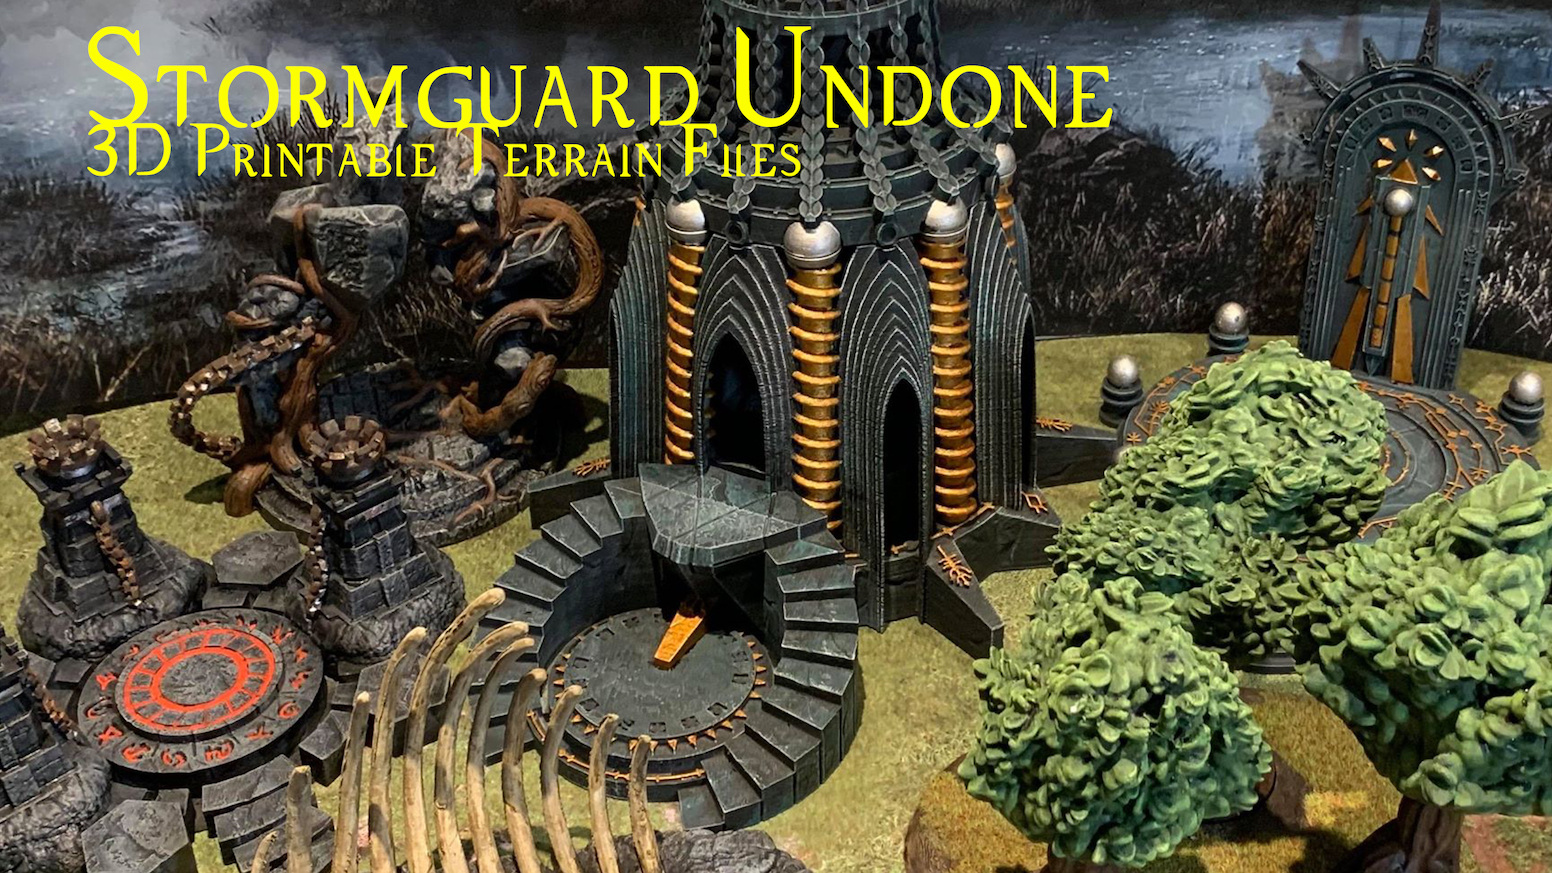 Stormguard Undone is a set of highly detailed 3D printable fantasy terrain (STL files) for home 3D printing